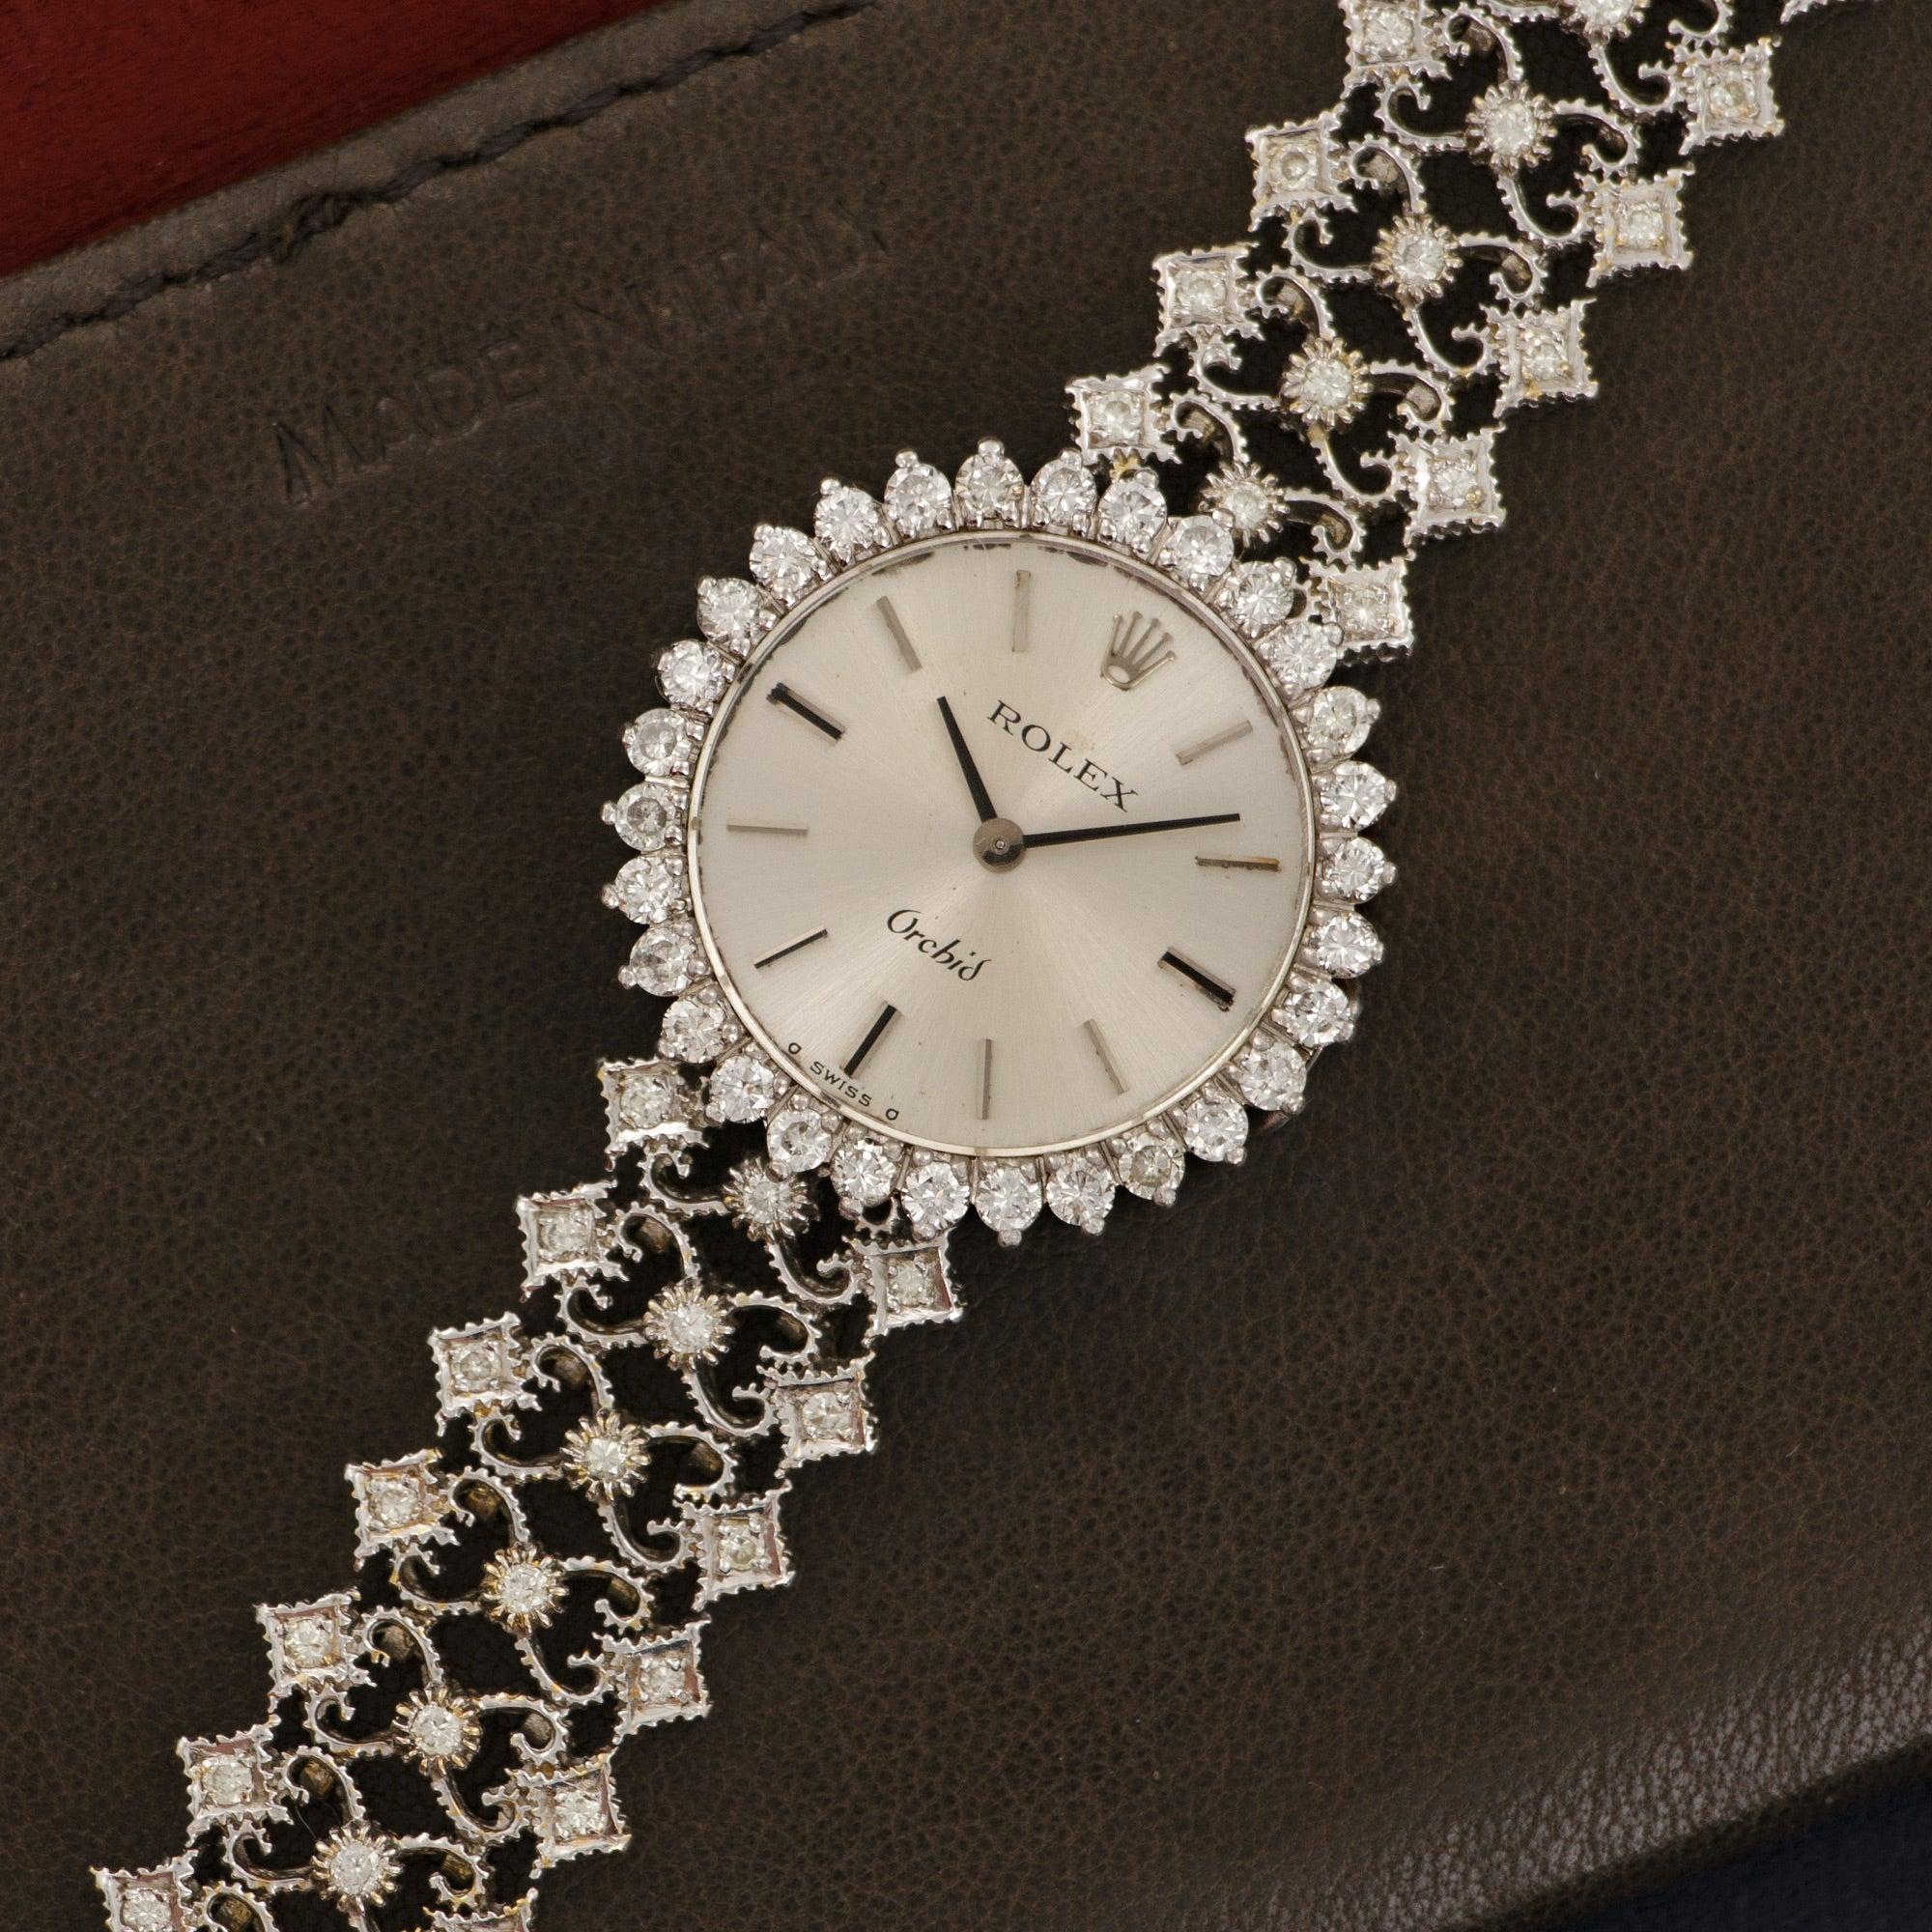 Rolex Orchid N/A 18k WG  Excellent Unisex 18k WG Silver Dial 24mm Manual 1970s 18k White Gold Diamond Bracelet Leather Travel Case